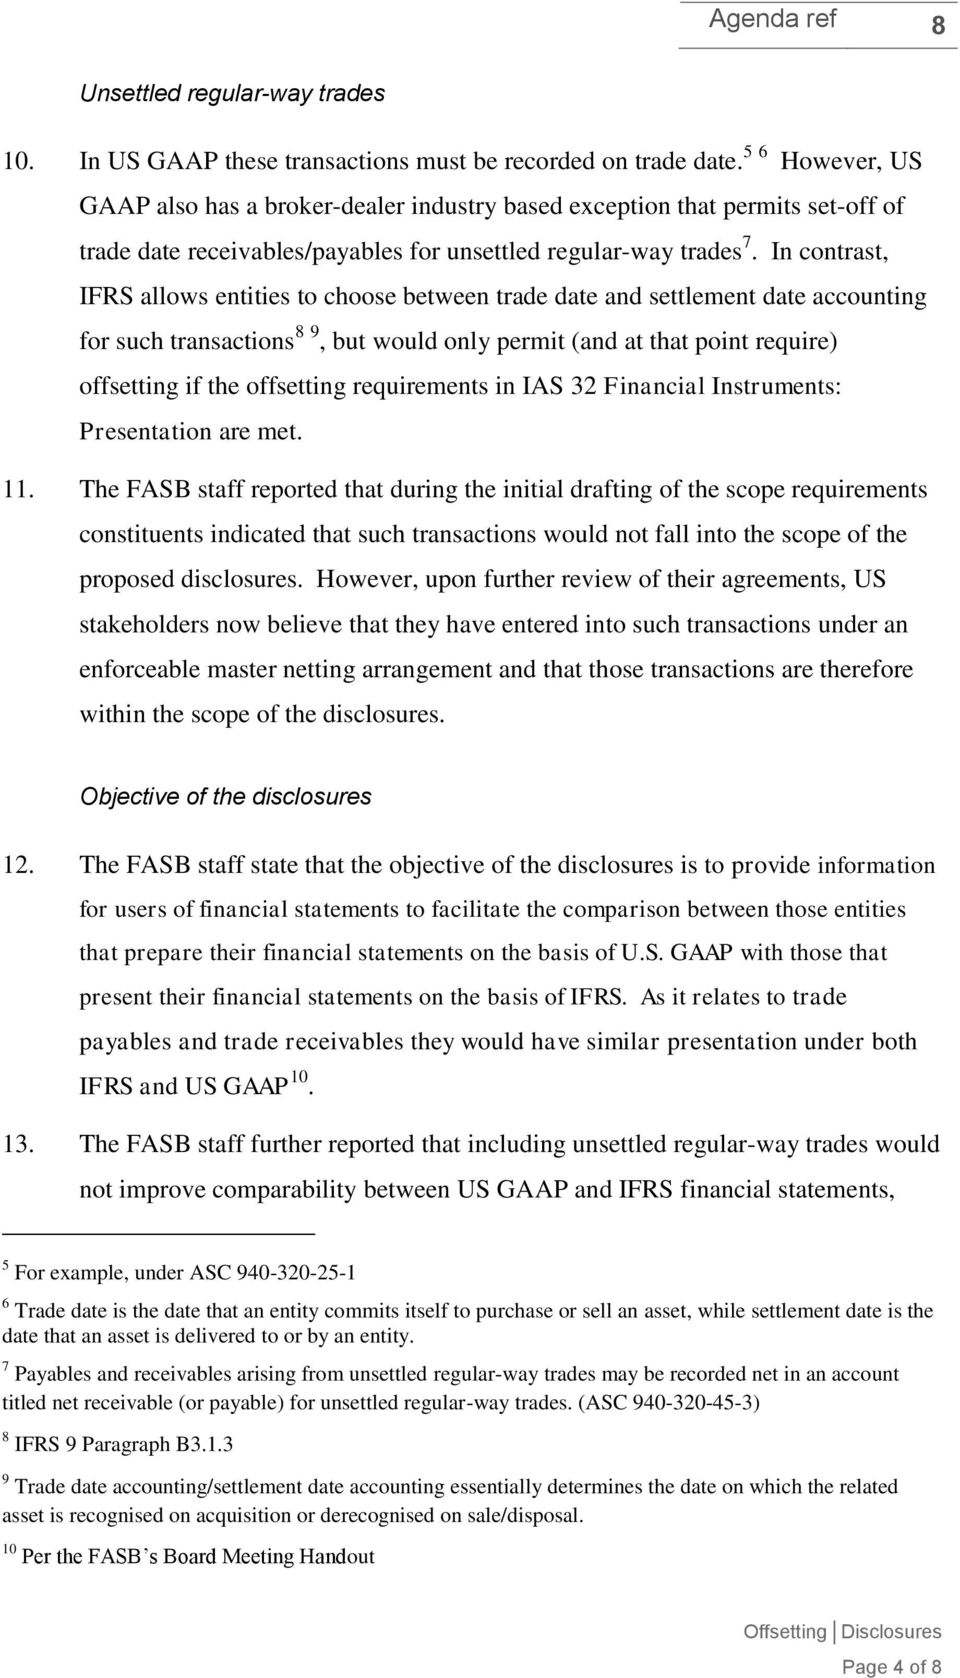 In contrast, IFRS allows entities to choose between trade date and settlement date accounting for such transactions 8 9, but would only permit (and at that point require) offsetting if the offsetting